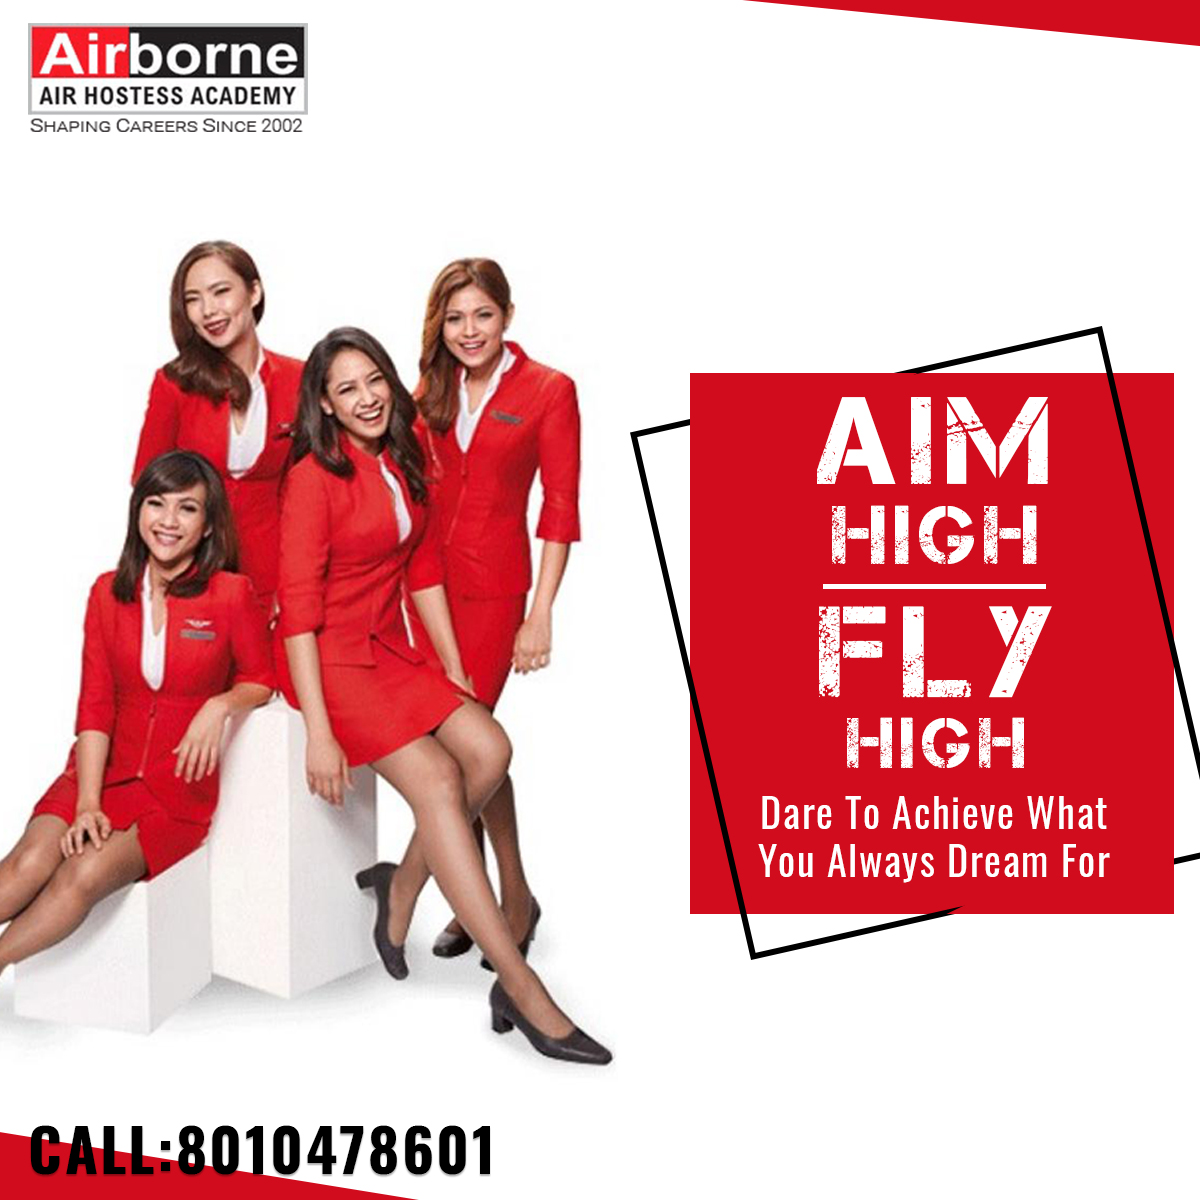 Aim high! Fly high! Dare to achieve what You always dream for #airhostess #cabincrew #crewlife  #aviation #cabincrewlife  #cabincrewgirls  #airport  #aircrew #airlinecrew  For More Details: Website: http://airborneairhostessacademy.com/  Email Id: airborne.fly@gmail.com Phone: +91-­8010478601pic.twitter.com/pWaZ0uQn9z